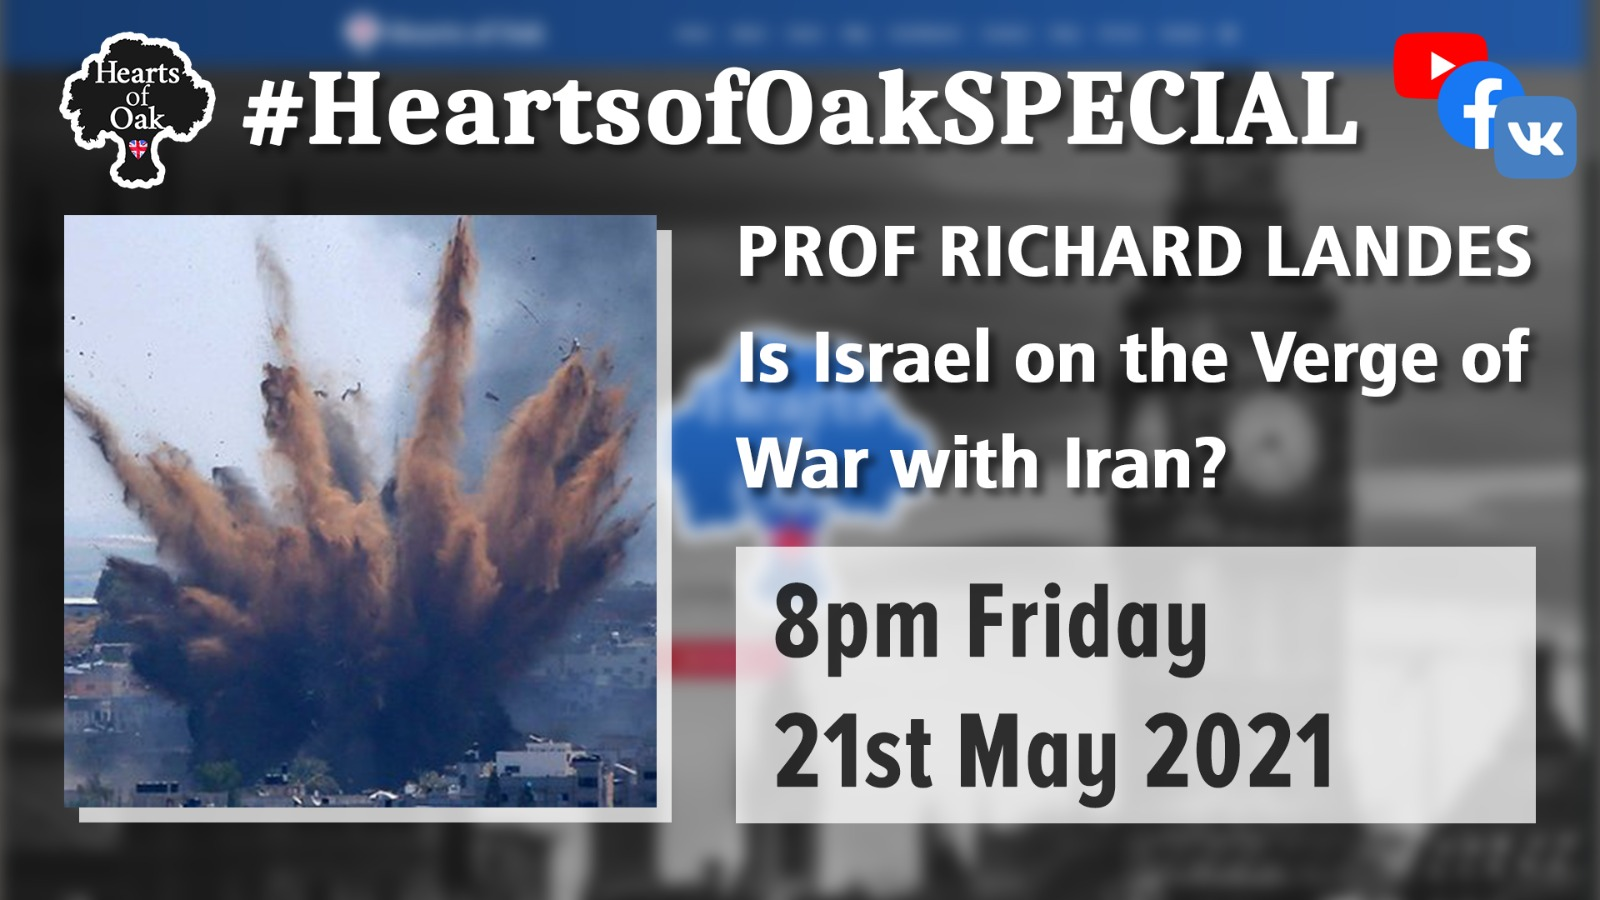 Is Israel on the Verge of War with Iran? : Professor Richard Landes